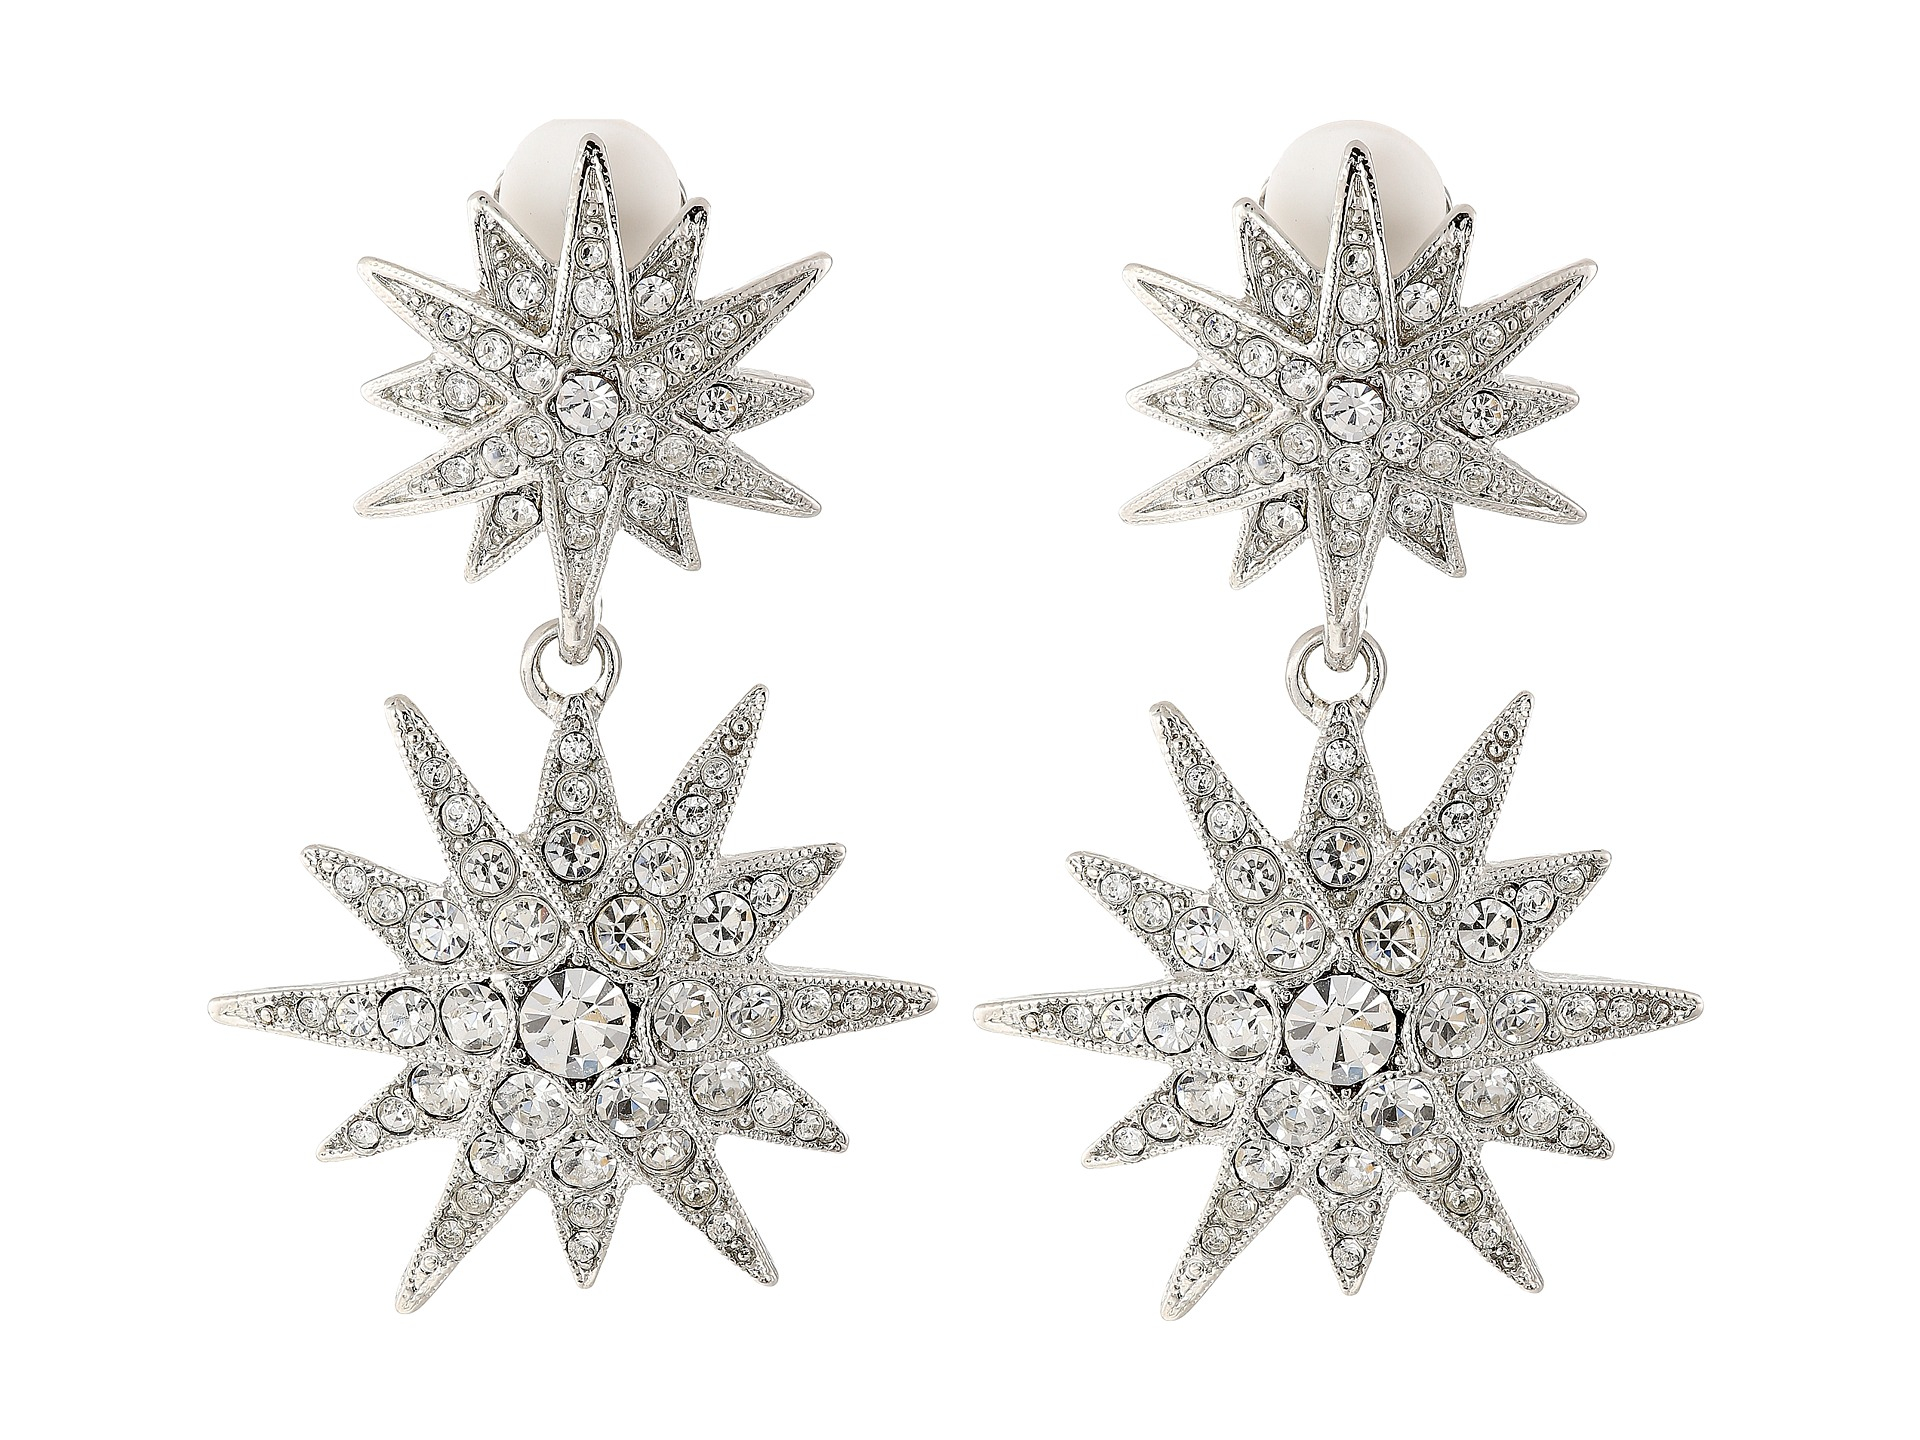 Kenneth Jay Lane Silver Crystal Starburst Clip Earring XeW29mHXW9